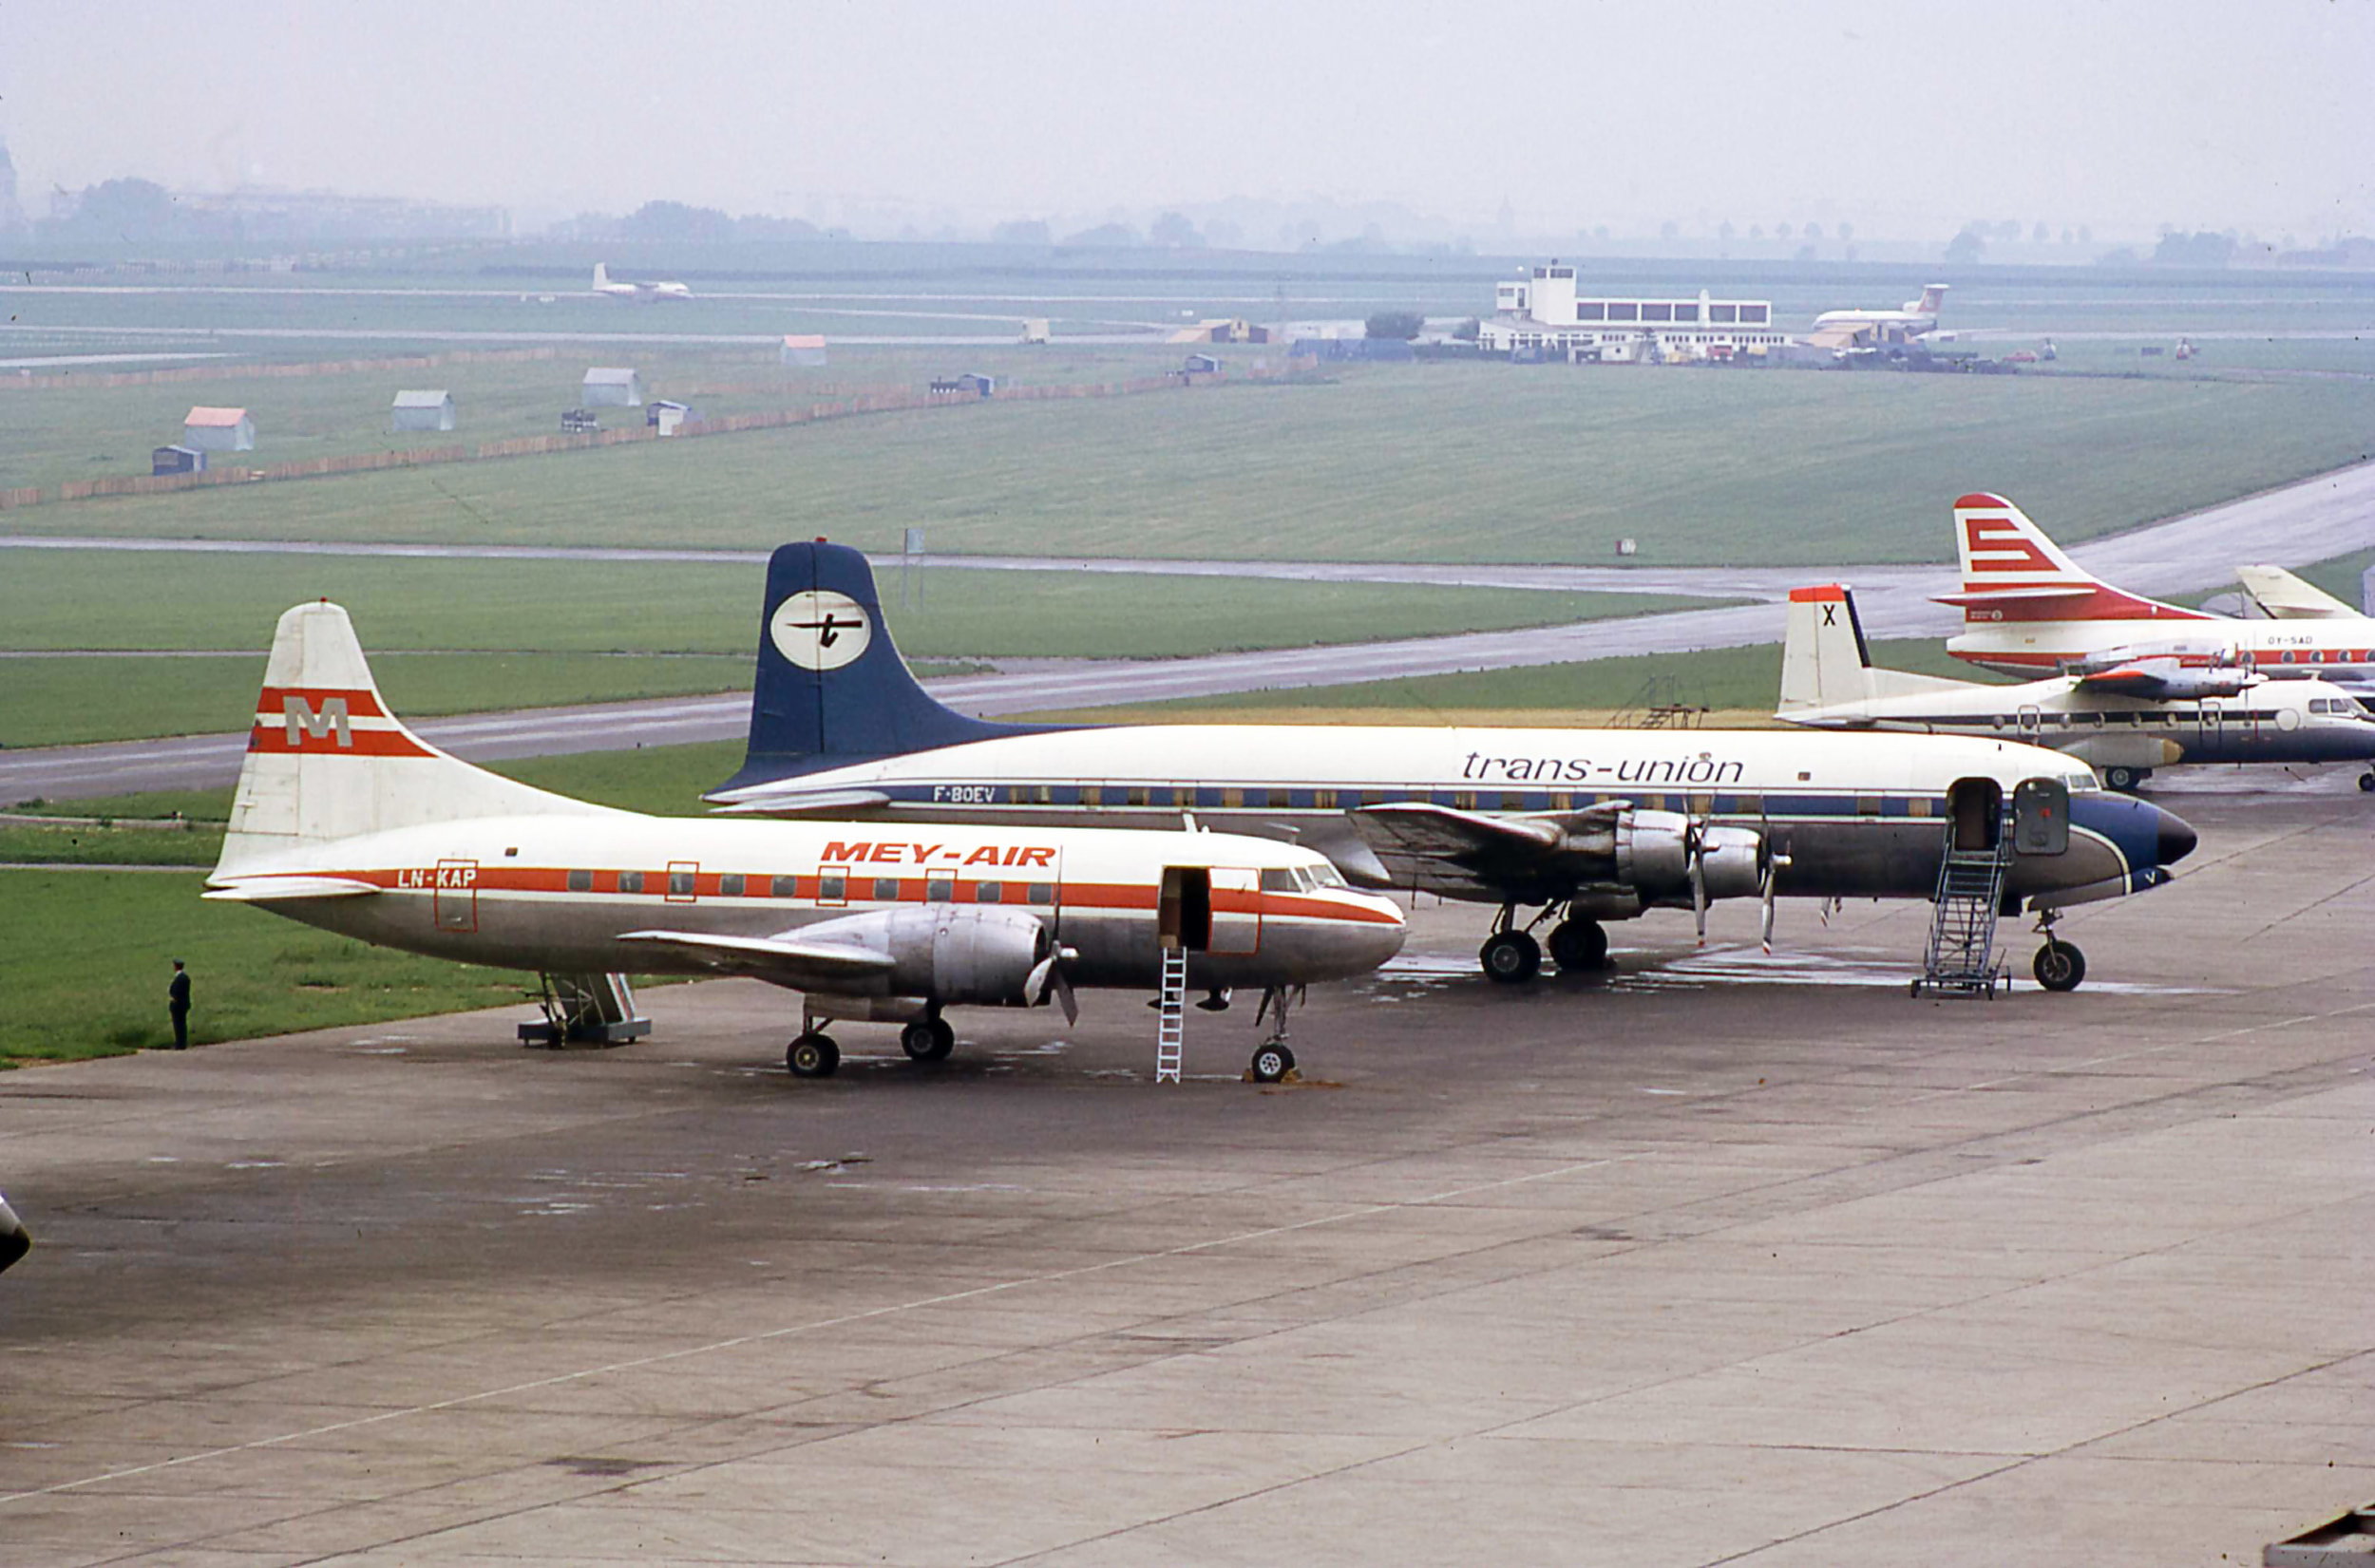 A great collection of classic airliners at Paris Le Bourget in June 1971.